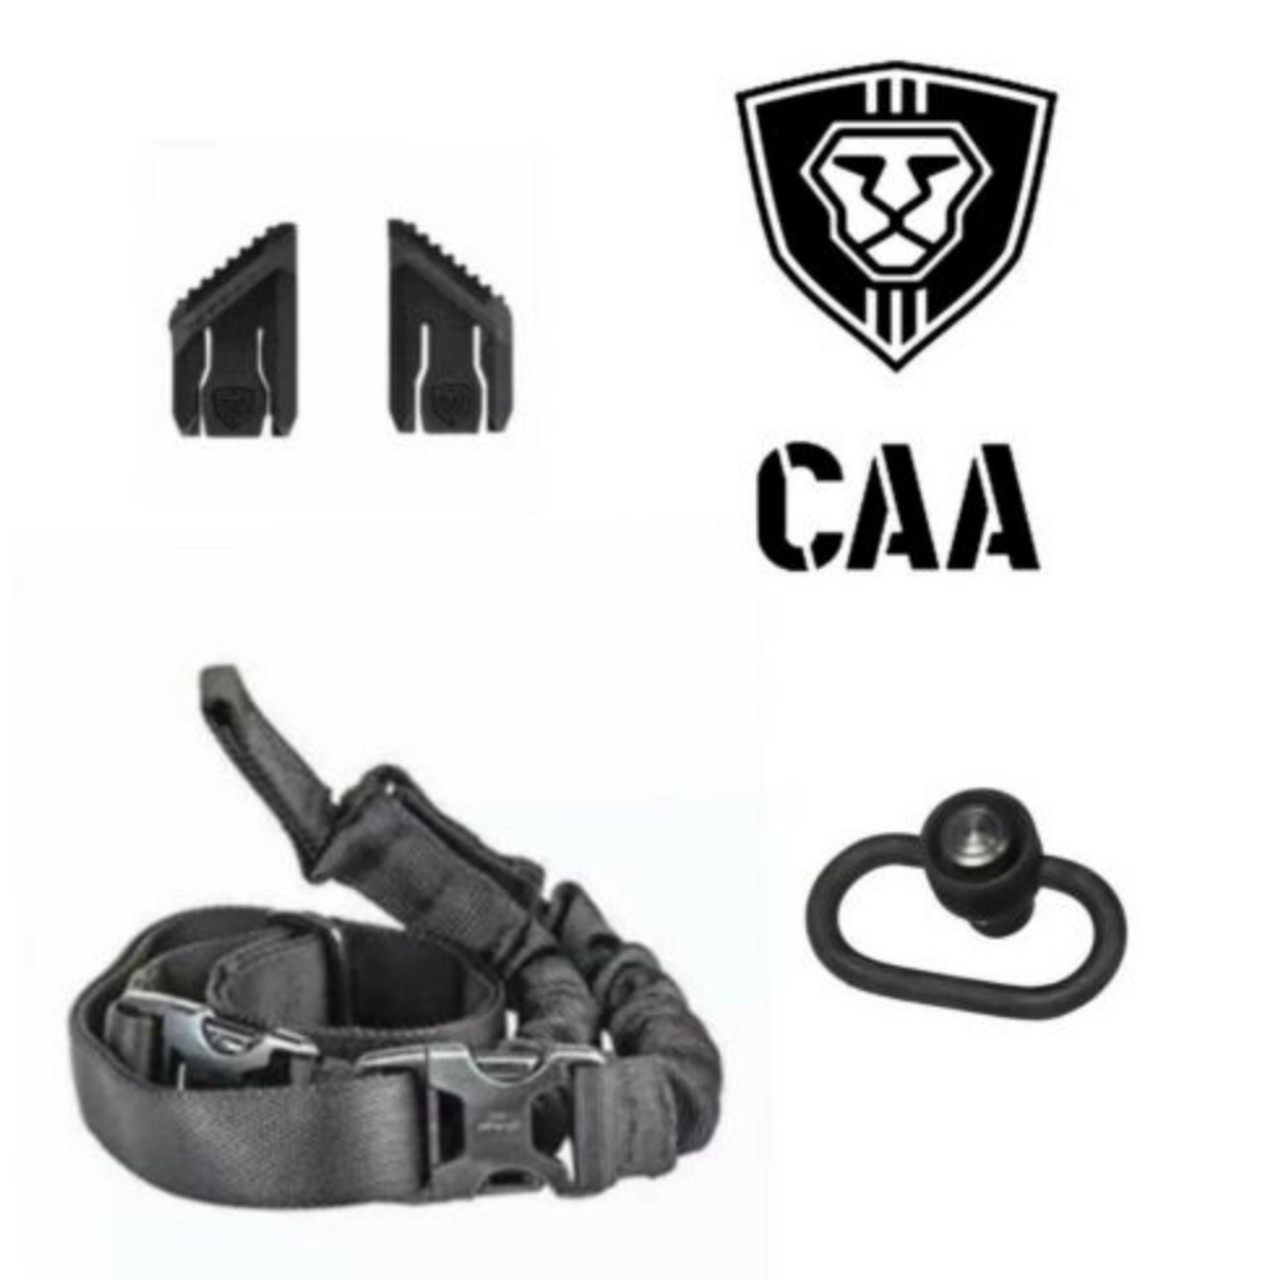 CAA OPS Combo One Point Sling Thumb Stops QD Swivel